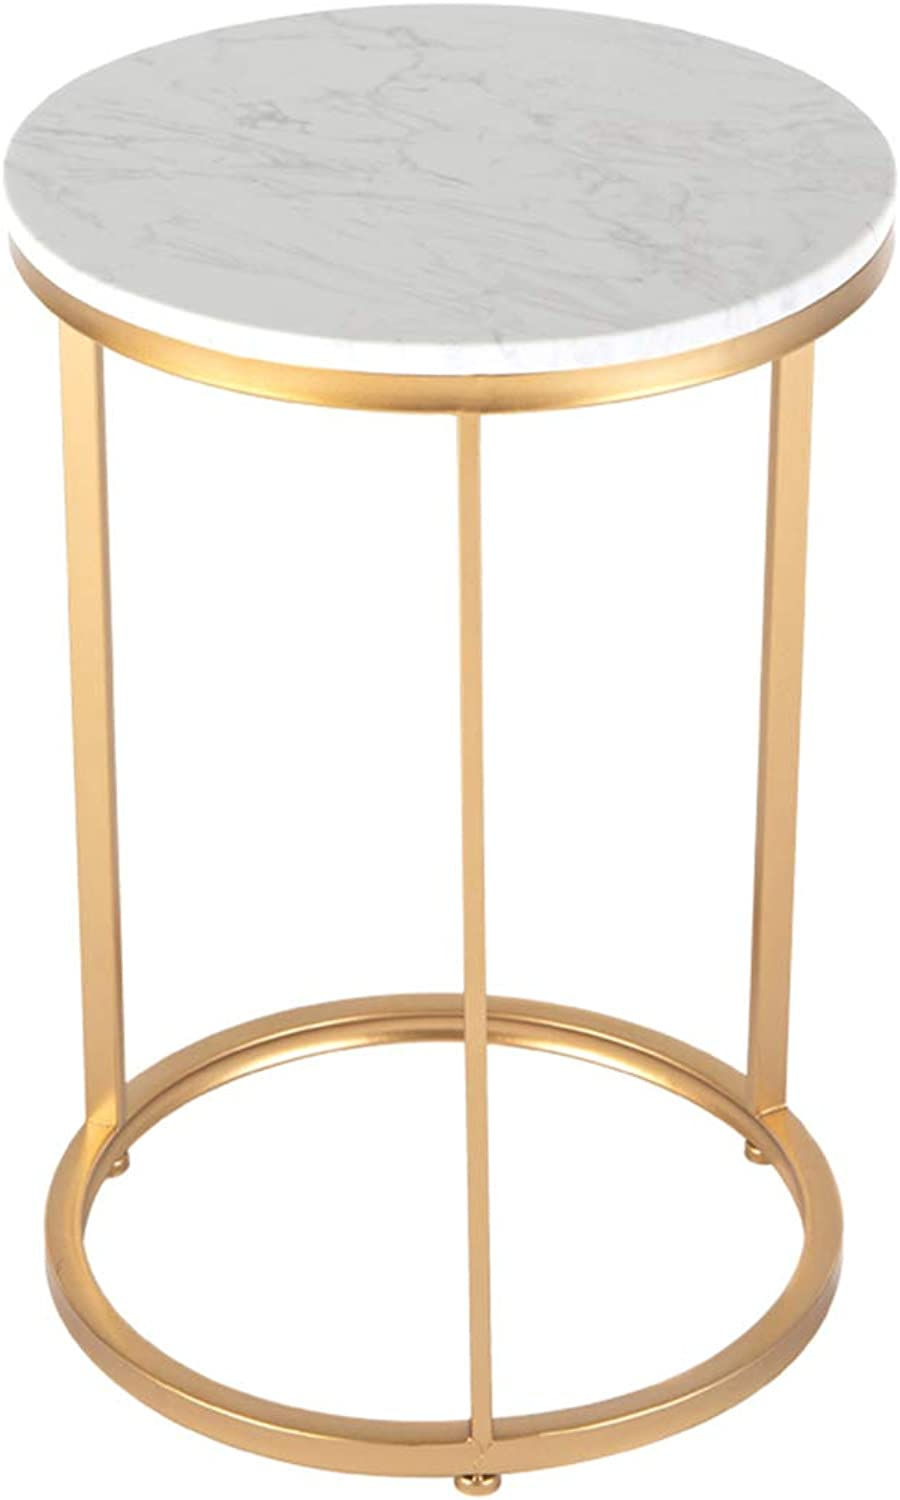 Coffee Folding Drop-Leaf Table, Household Kitchen Dining Table